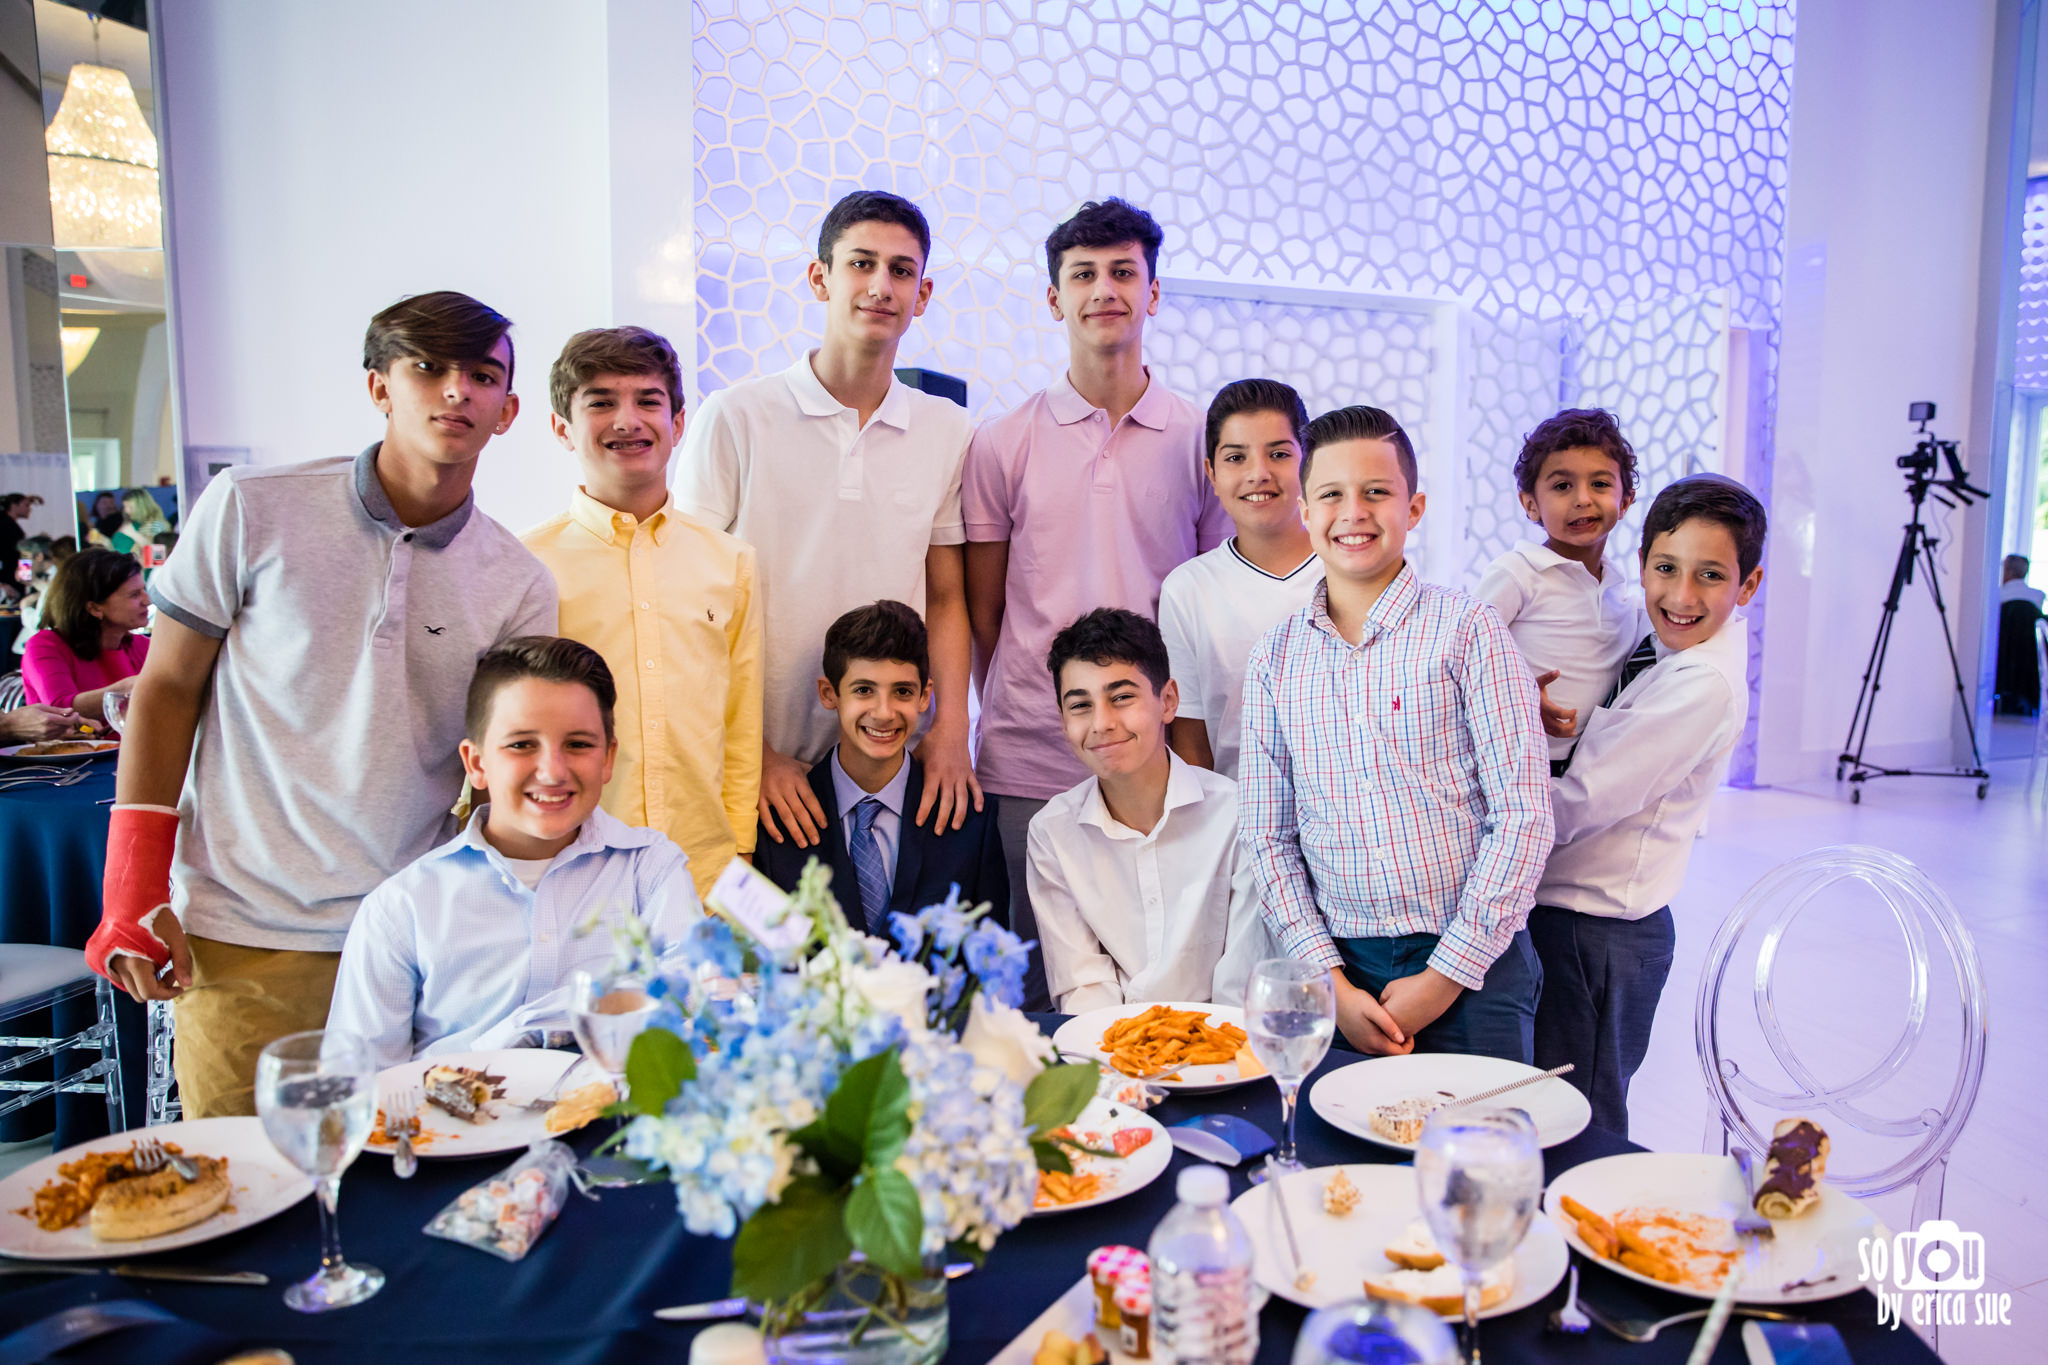 so-you-by-erica-sue-mitzvah-bnai-sephardim-hollywood-one-event-place-kosher-caterer-1093.jpg